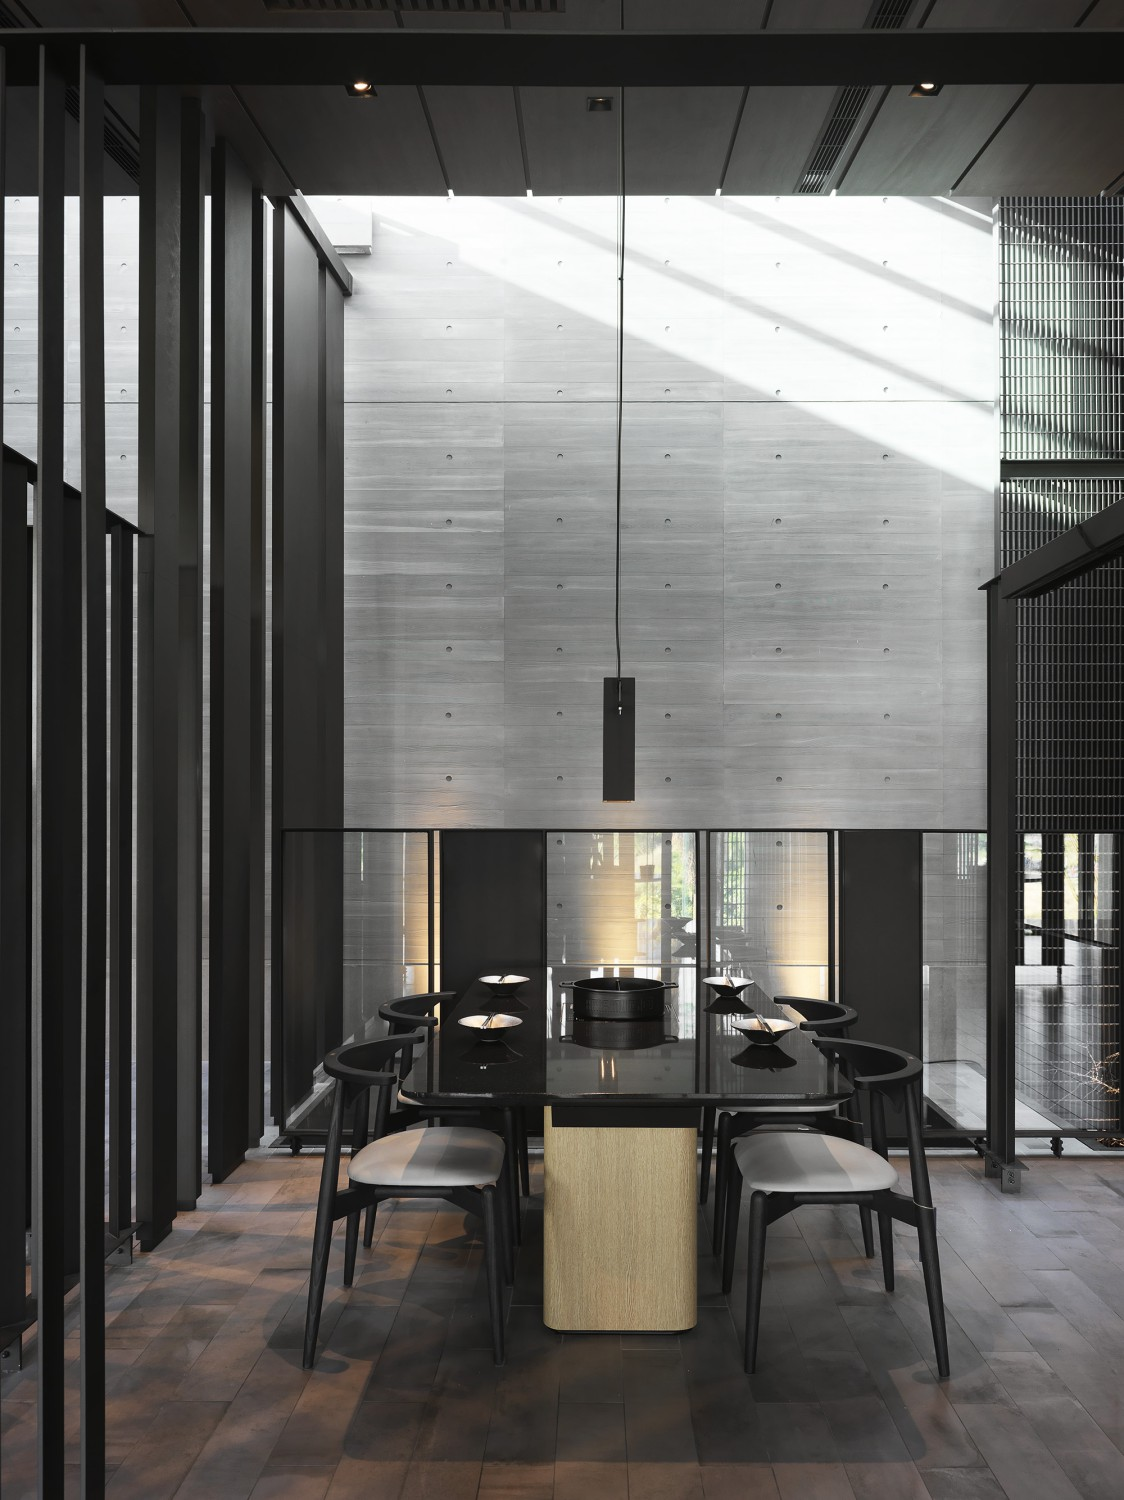 The sense of existence is reflected in the changes in light and shadow, which helps to awaken the cherished position of every moment in our lives. Moooten Studio / Qimin Wu